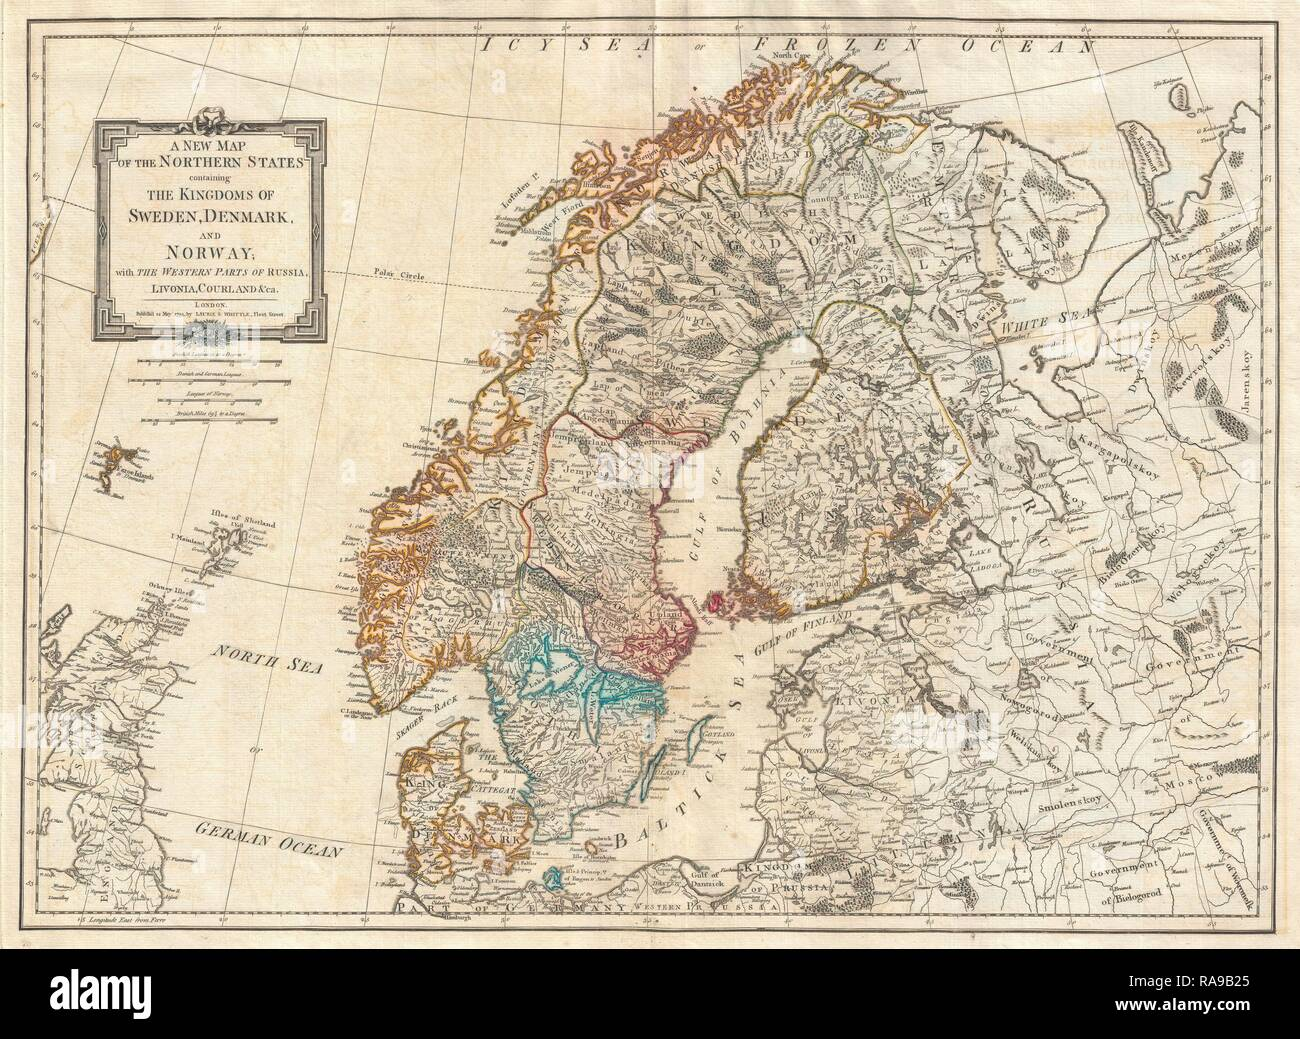 Map Of Norway Stock Photos & Map Of Norway Stock Images - Alamy Detailed Map Of Neska on